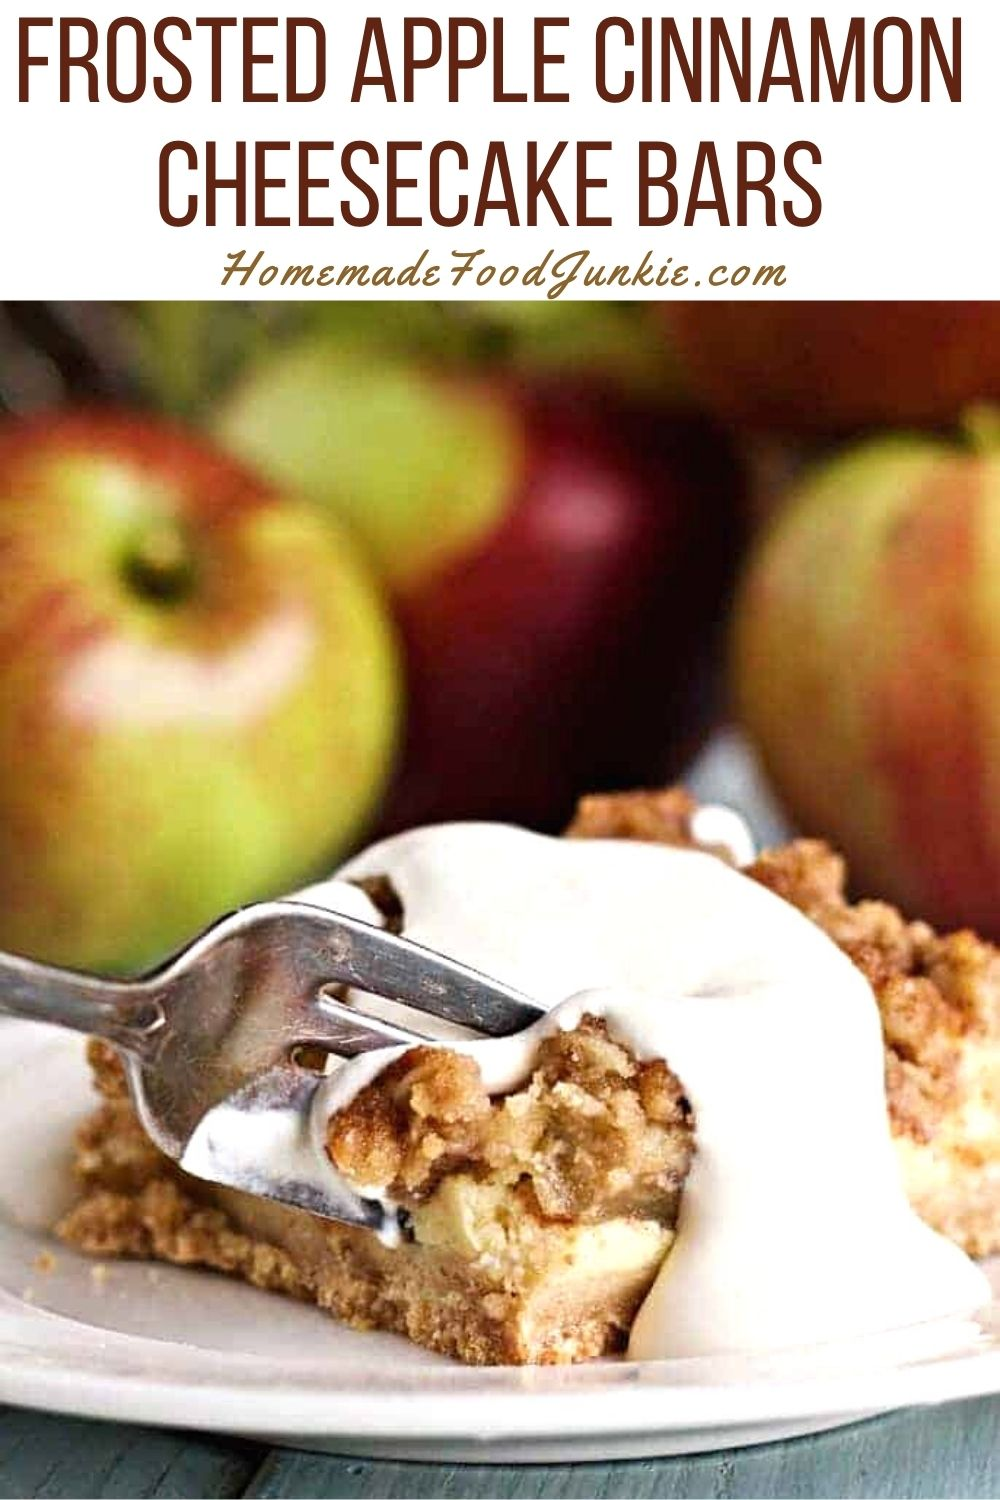 Frosted apple cinnamon cheesecake bars-pin image